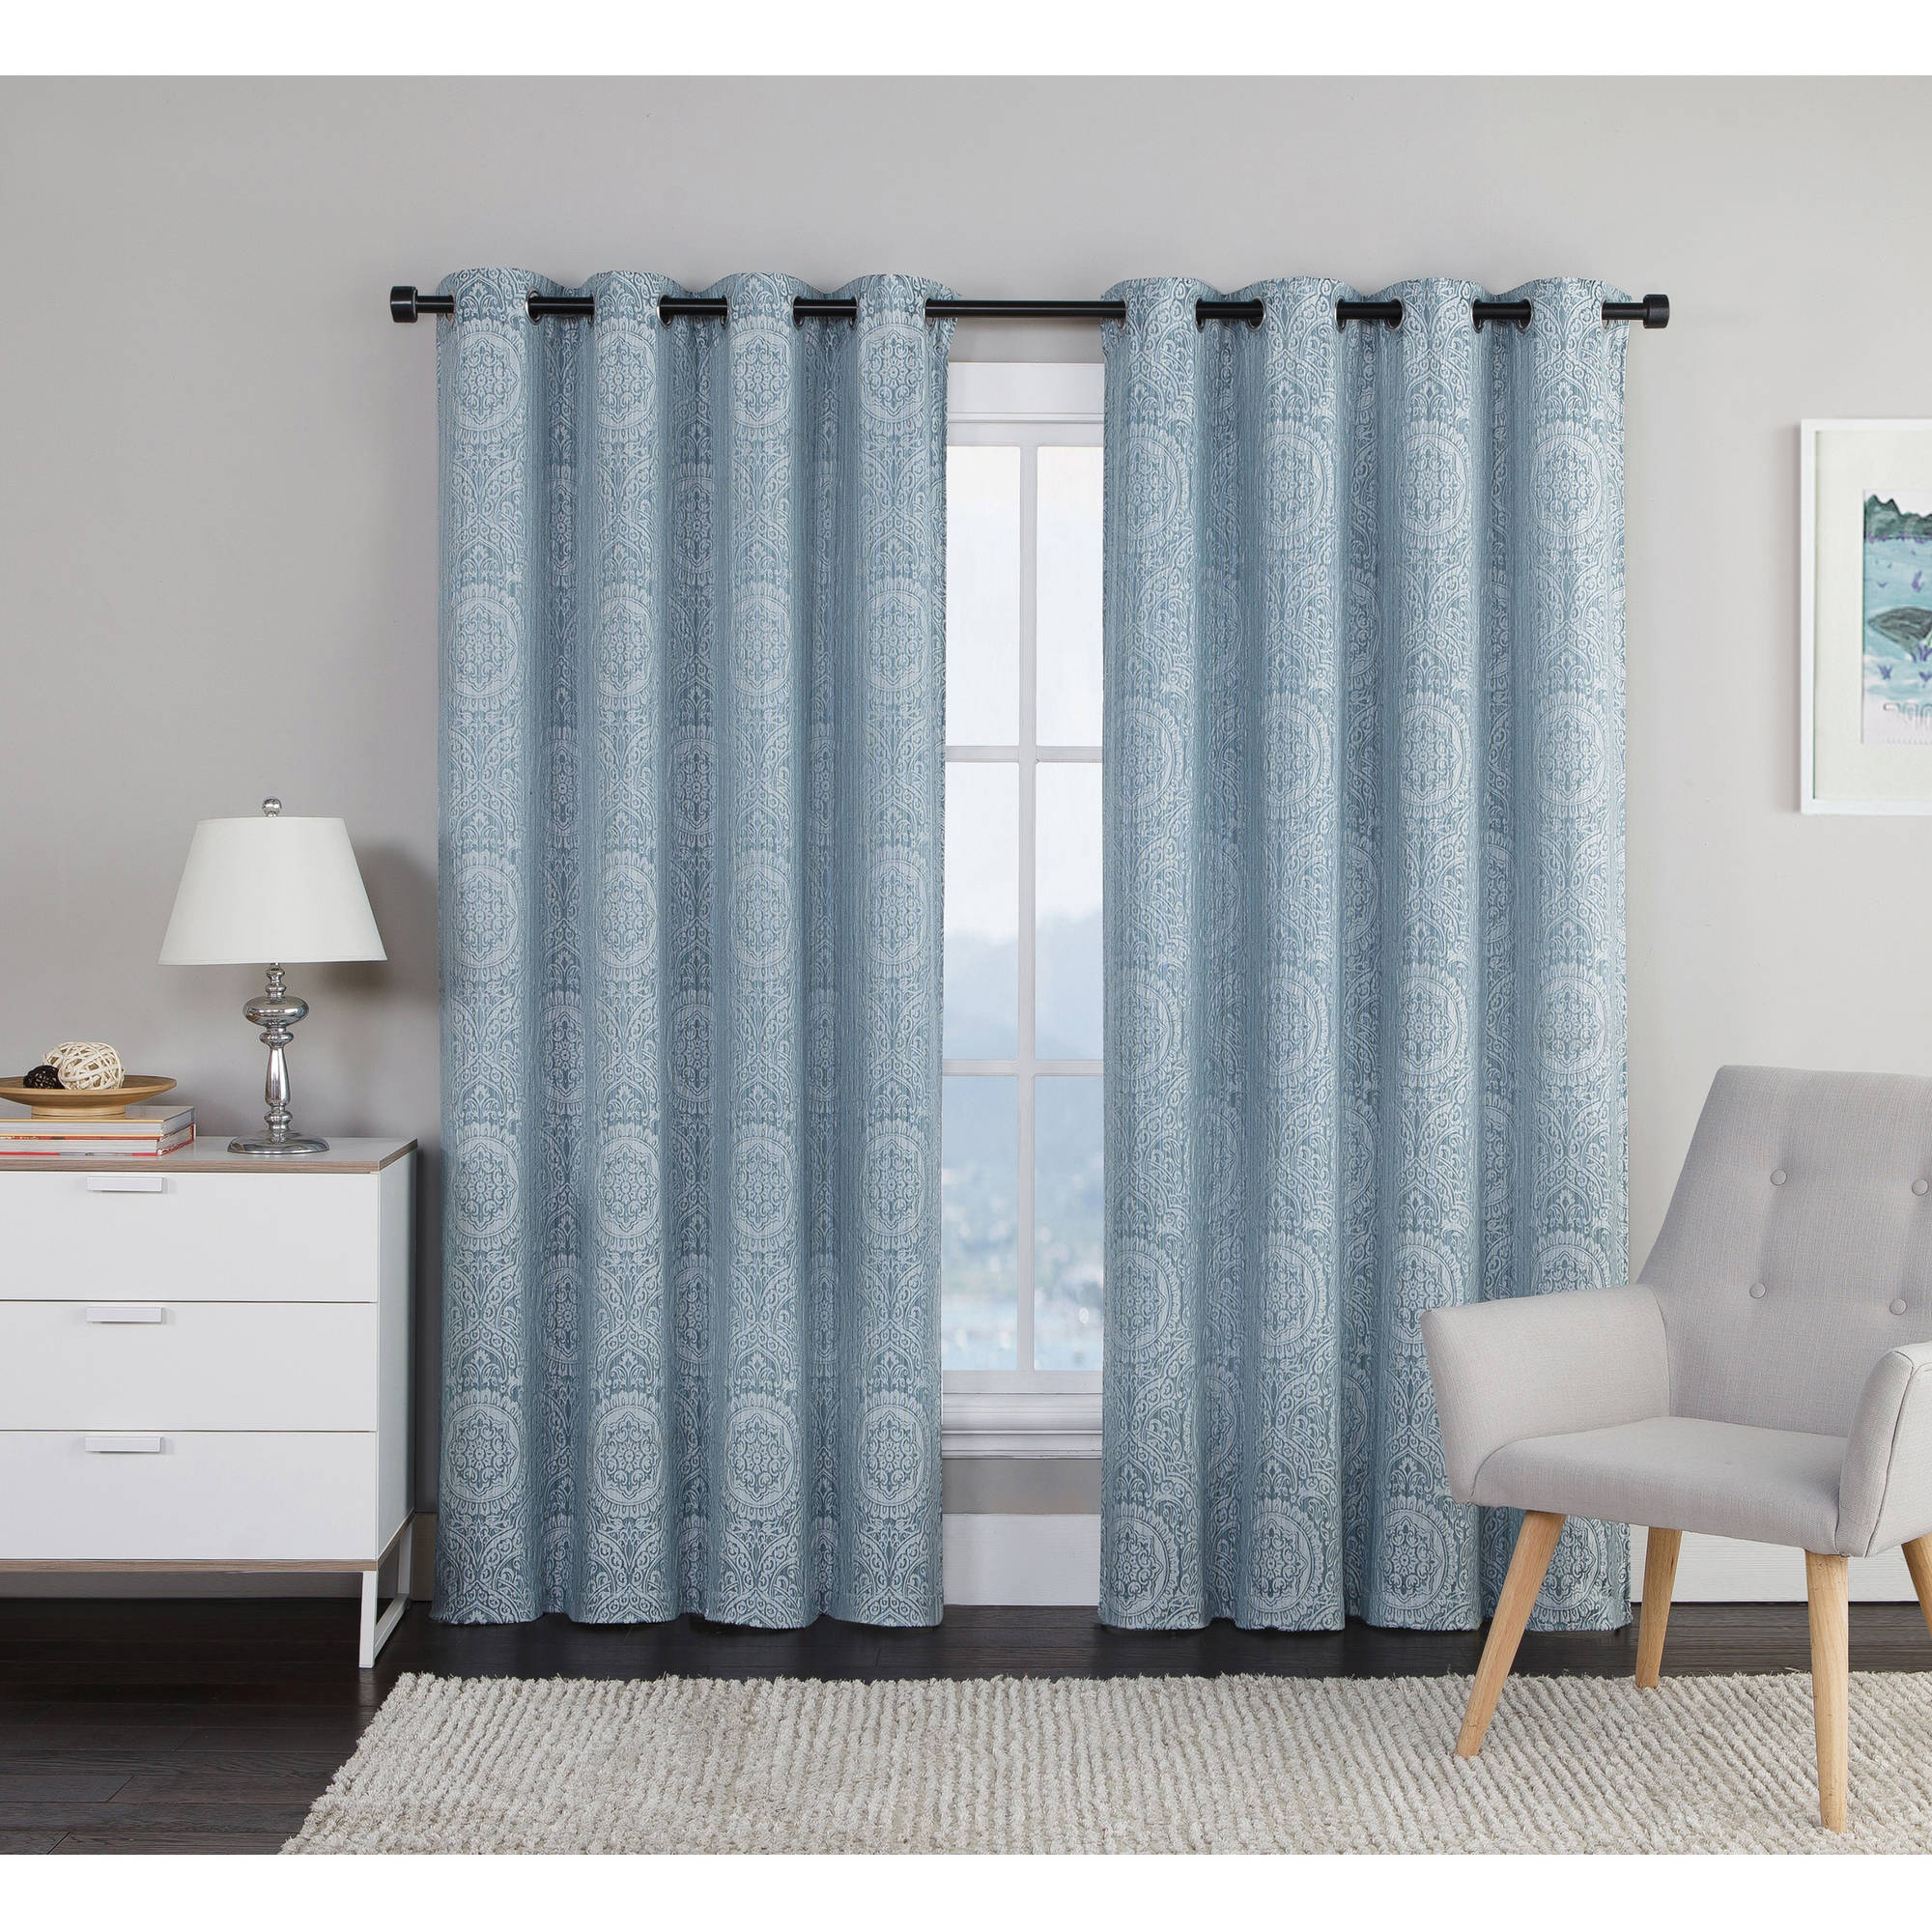 "***DISCONTINUED*** VCNY Home Utopia Medallion Jacquard 84"" Length Grommet Top Window Curtains, Set of 2"